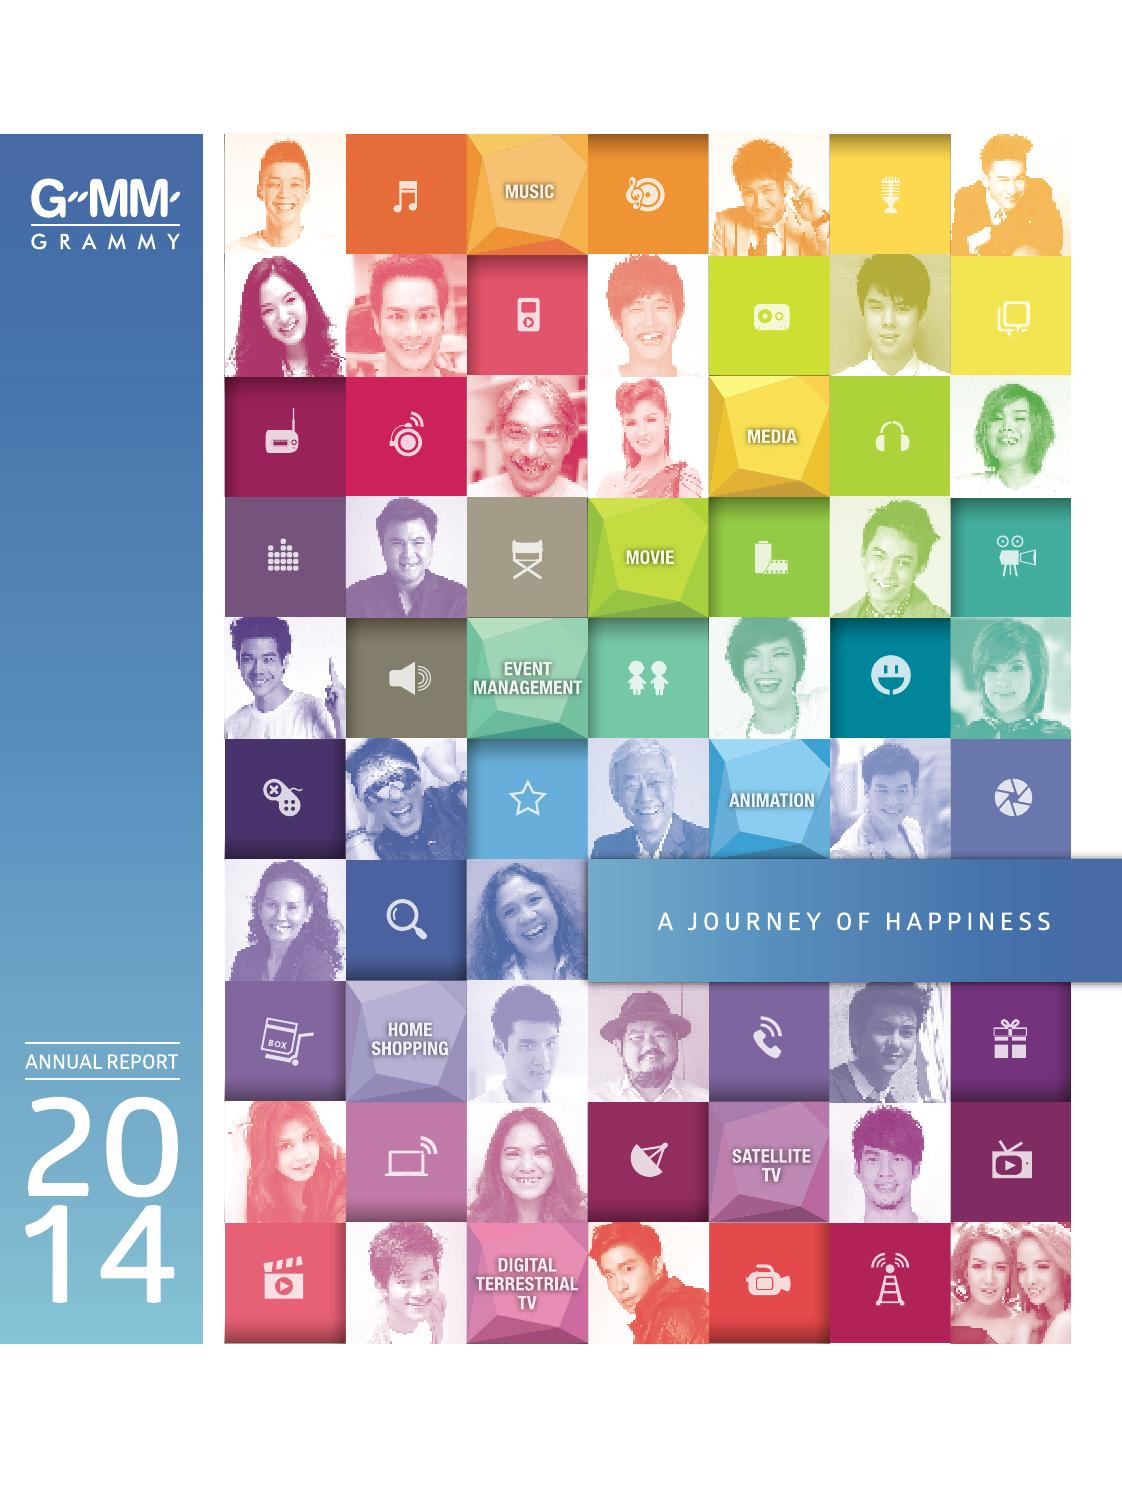 Annual report 2014 by surachet fungwatthananon issuu fandeluxe Images